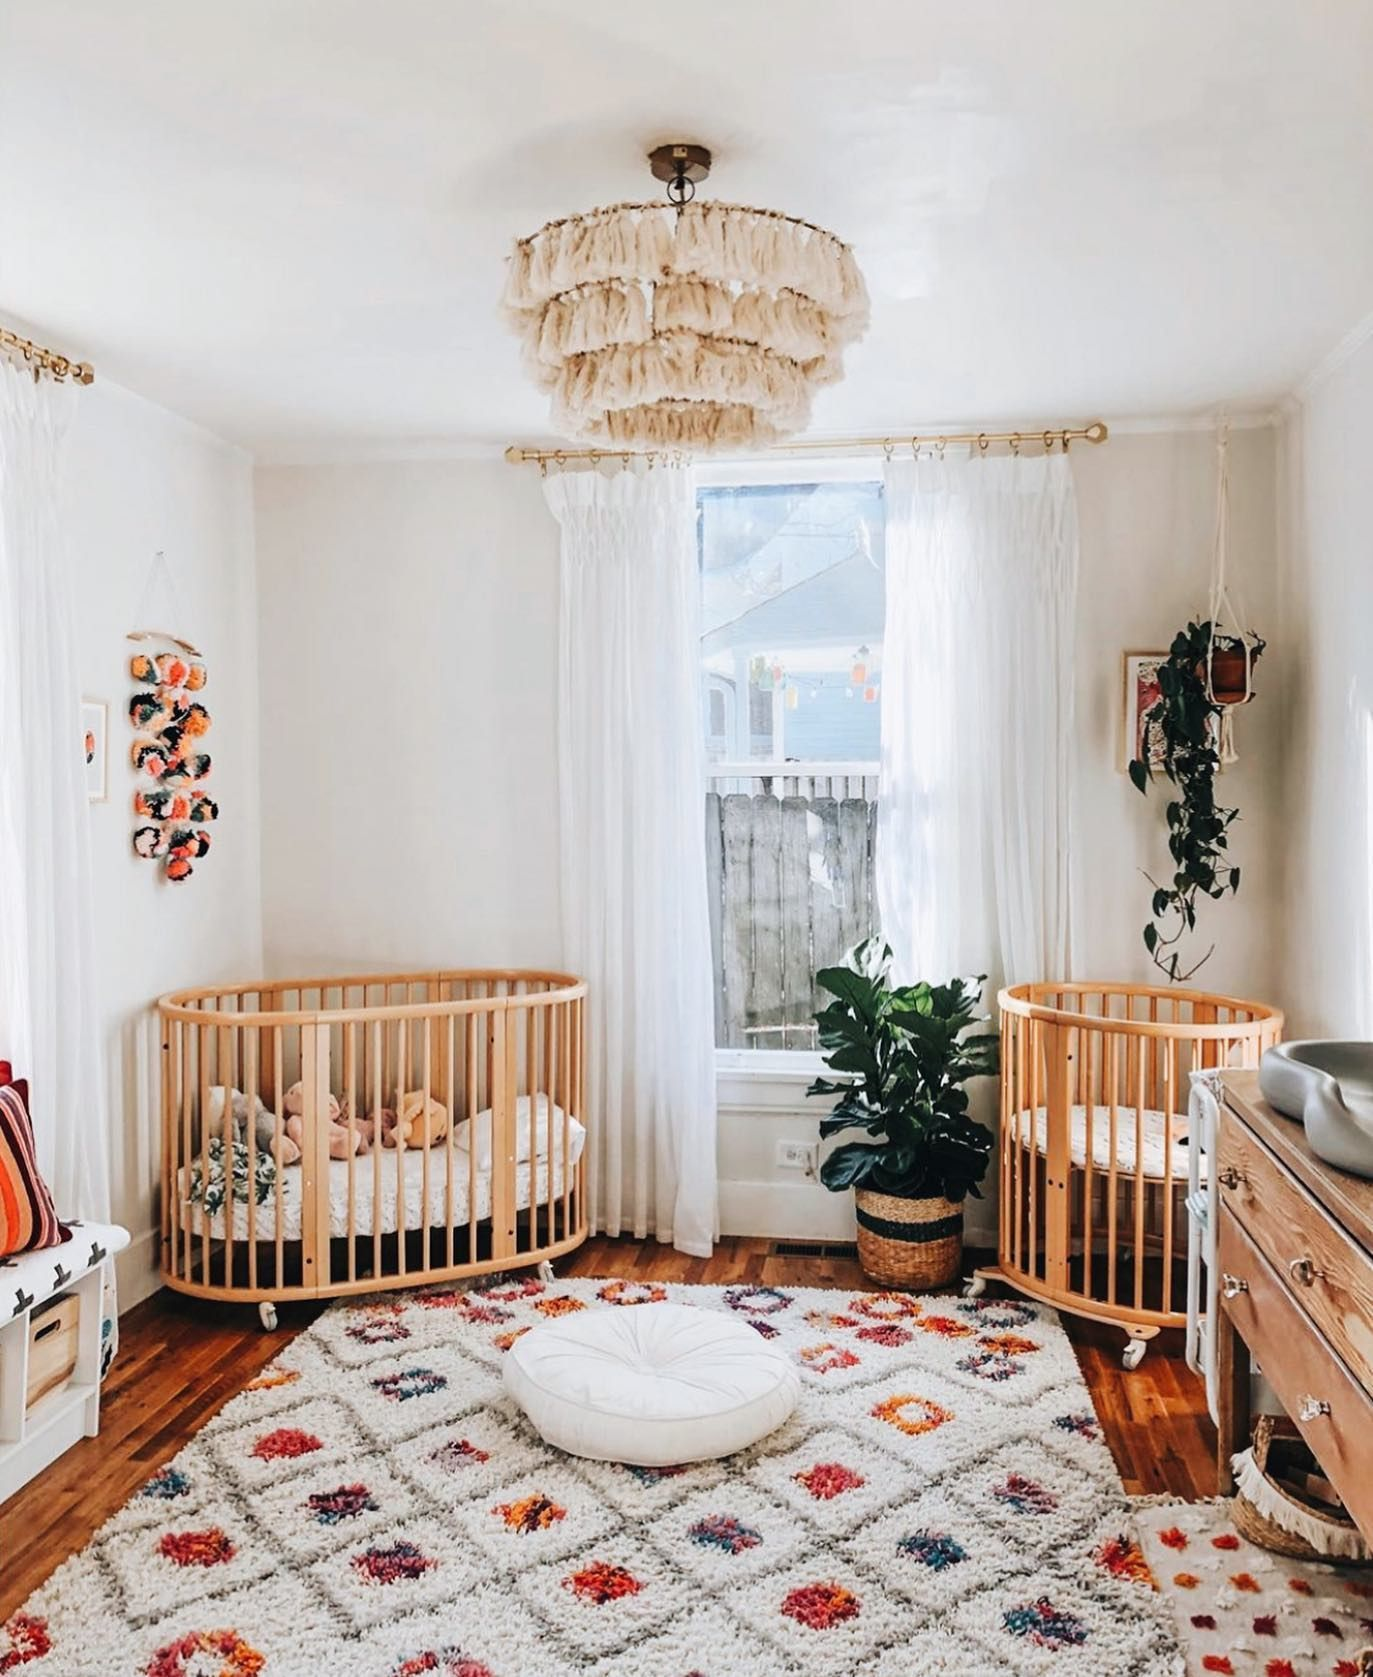 The Nursery In 2020 Room Layout Kids Shared Bedroom Rugs In Living Room #nursery #in #living #room